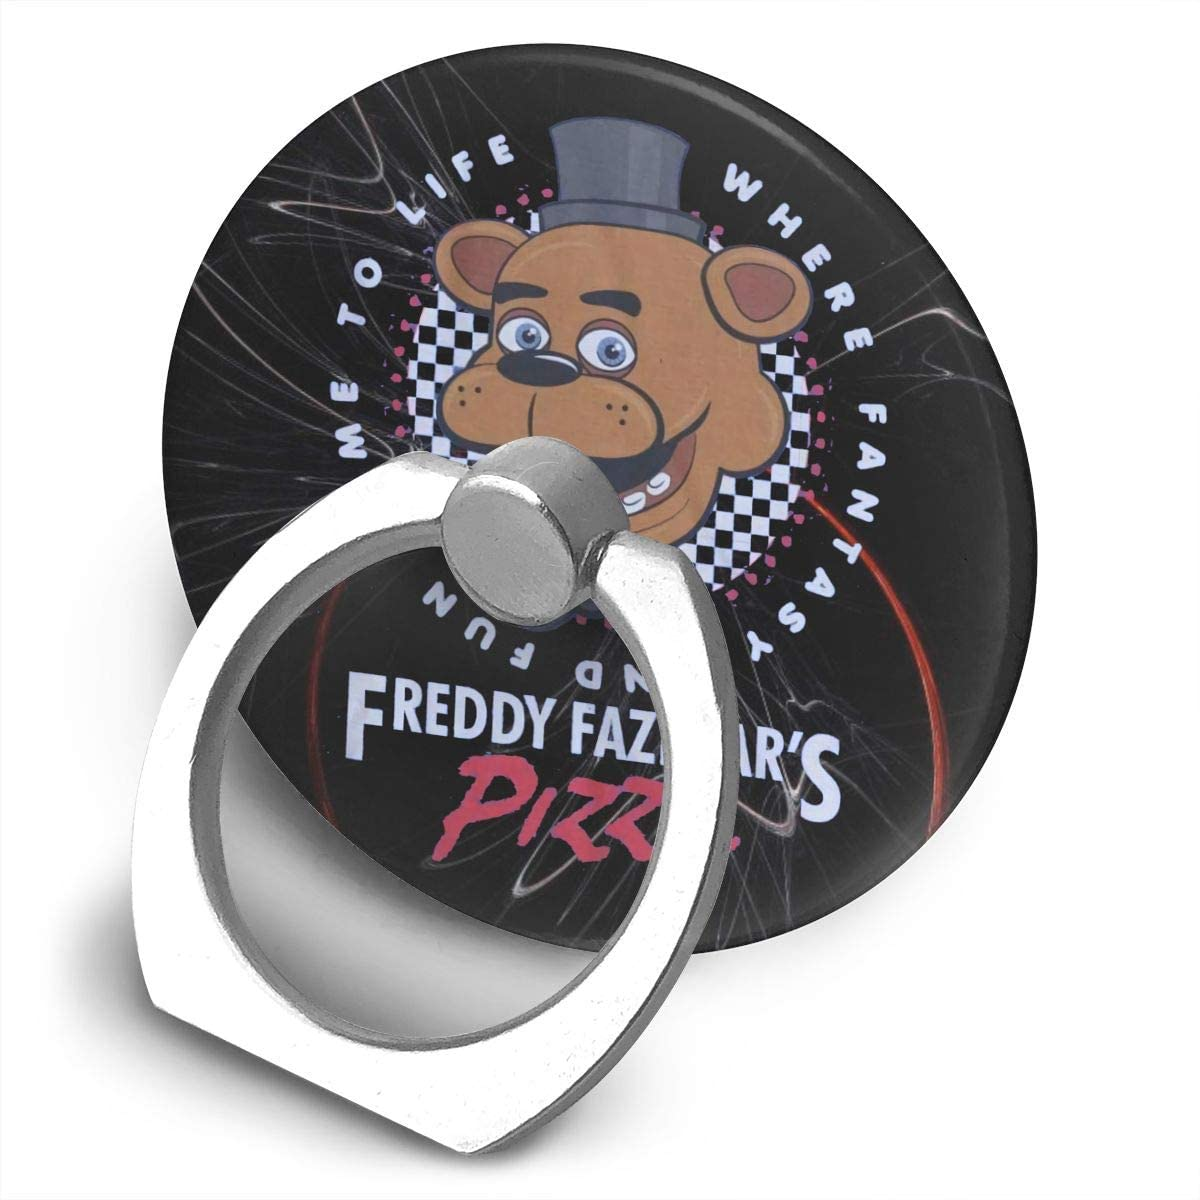 Kemeicle Five Nights at Freddy's Pizza 360 Rotating Ring Stand Cellphone Bracket Holder